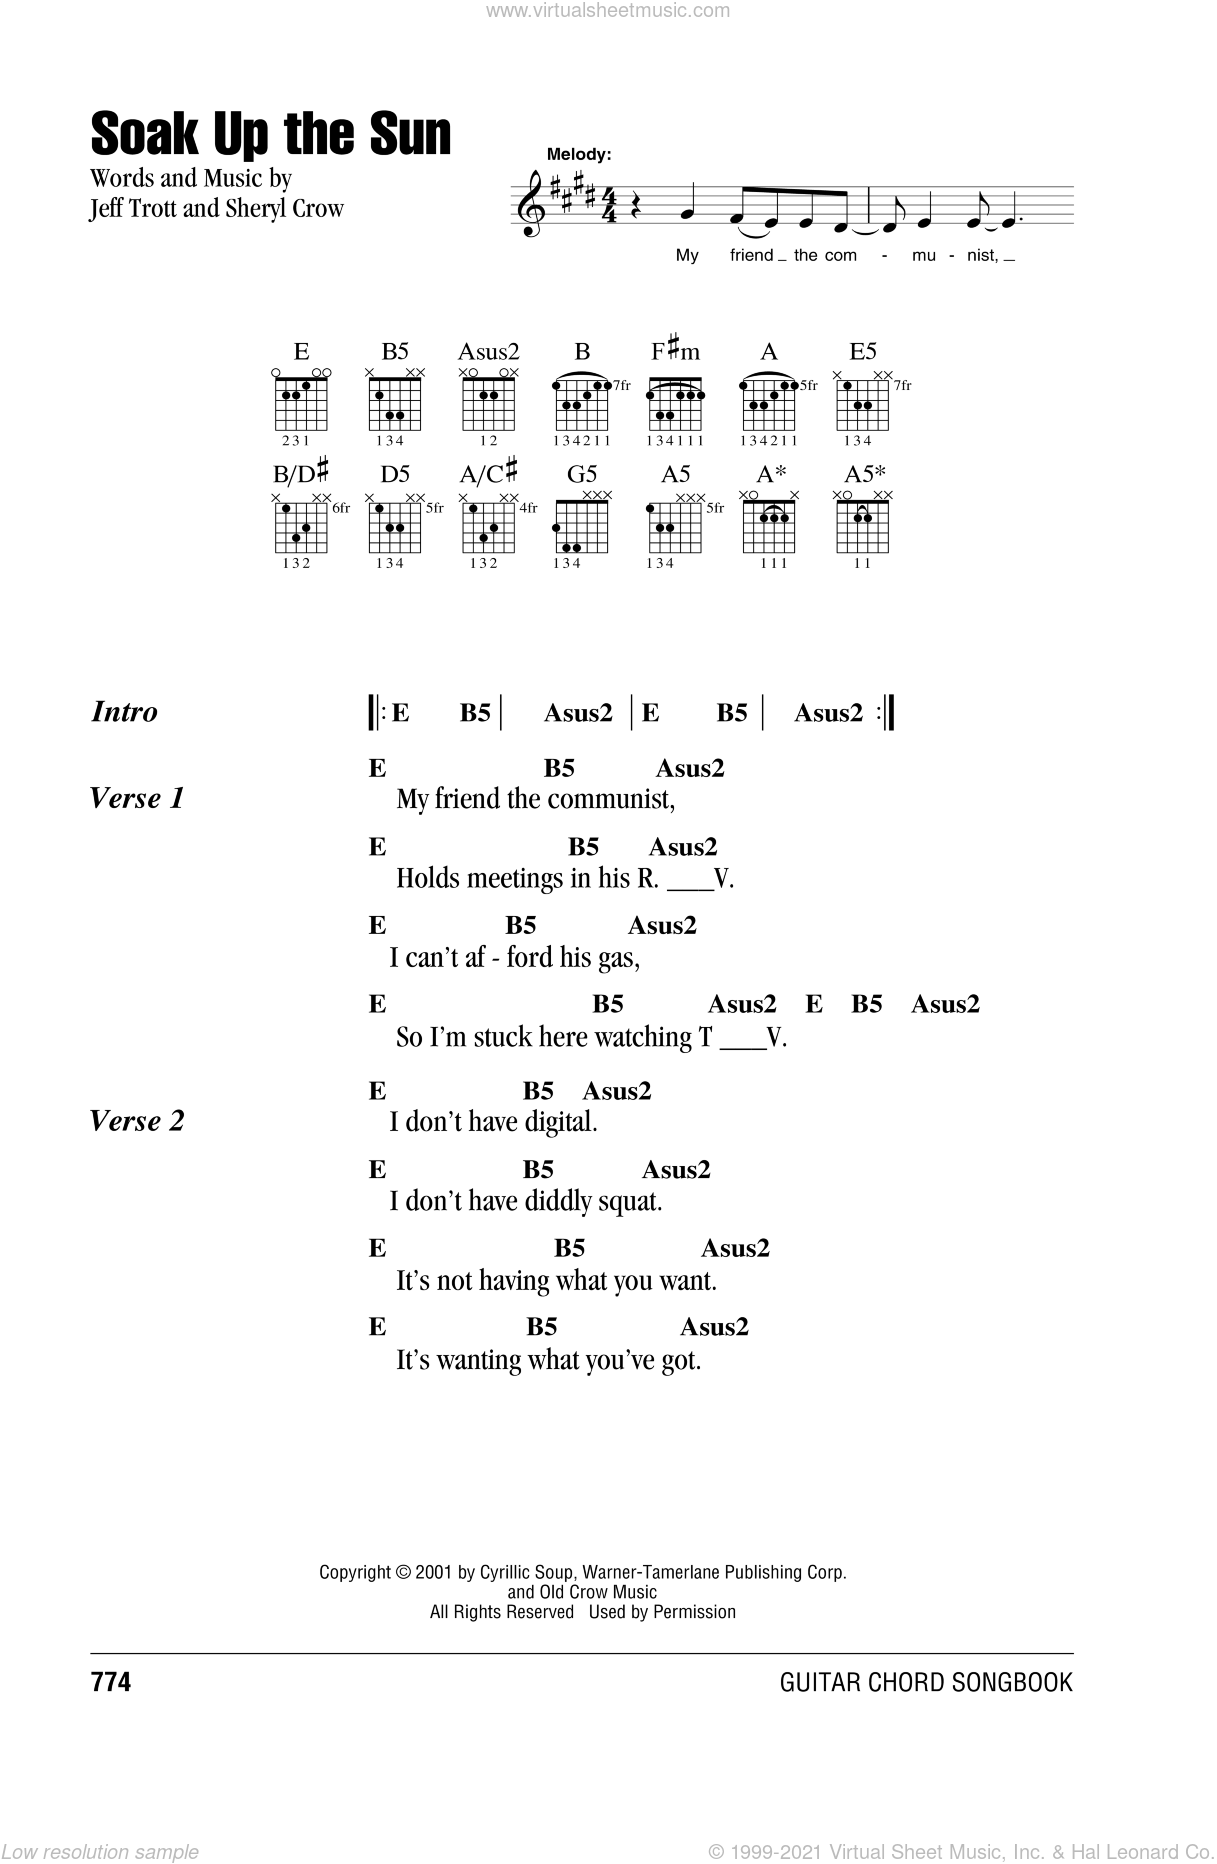 Soak Up The Sun sheet music for guitar (chords) by Jeff Trott